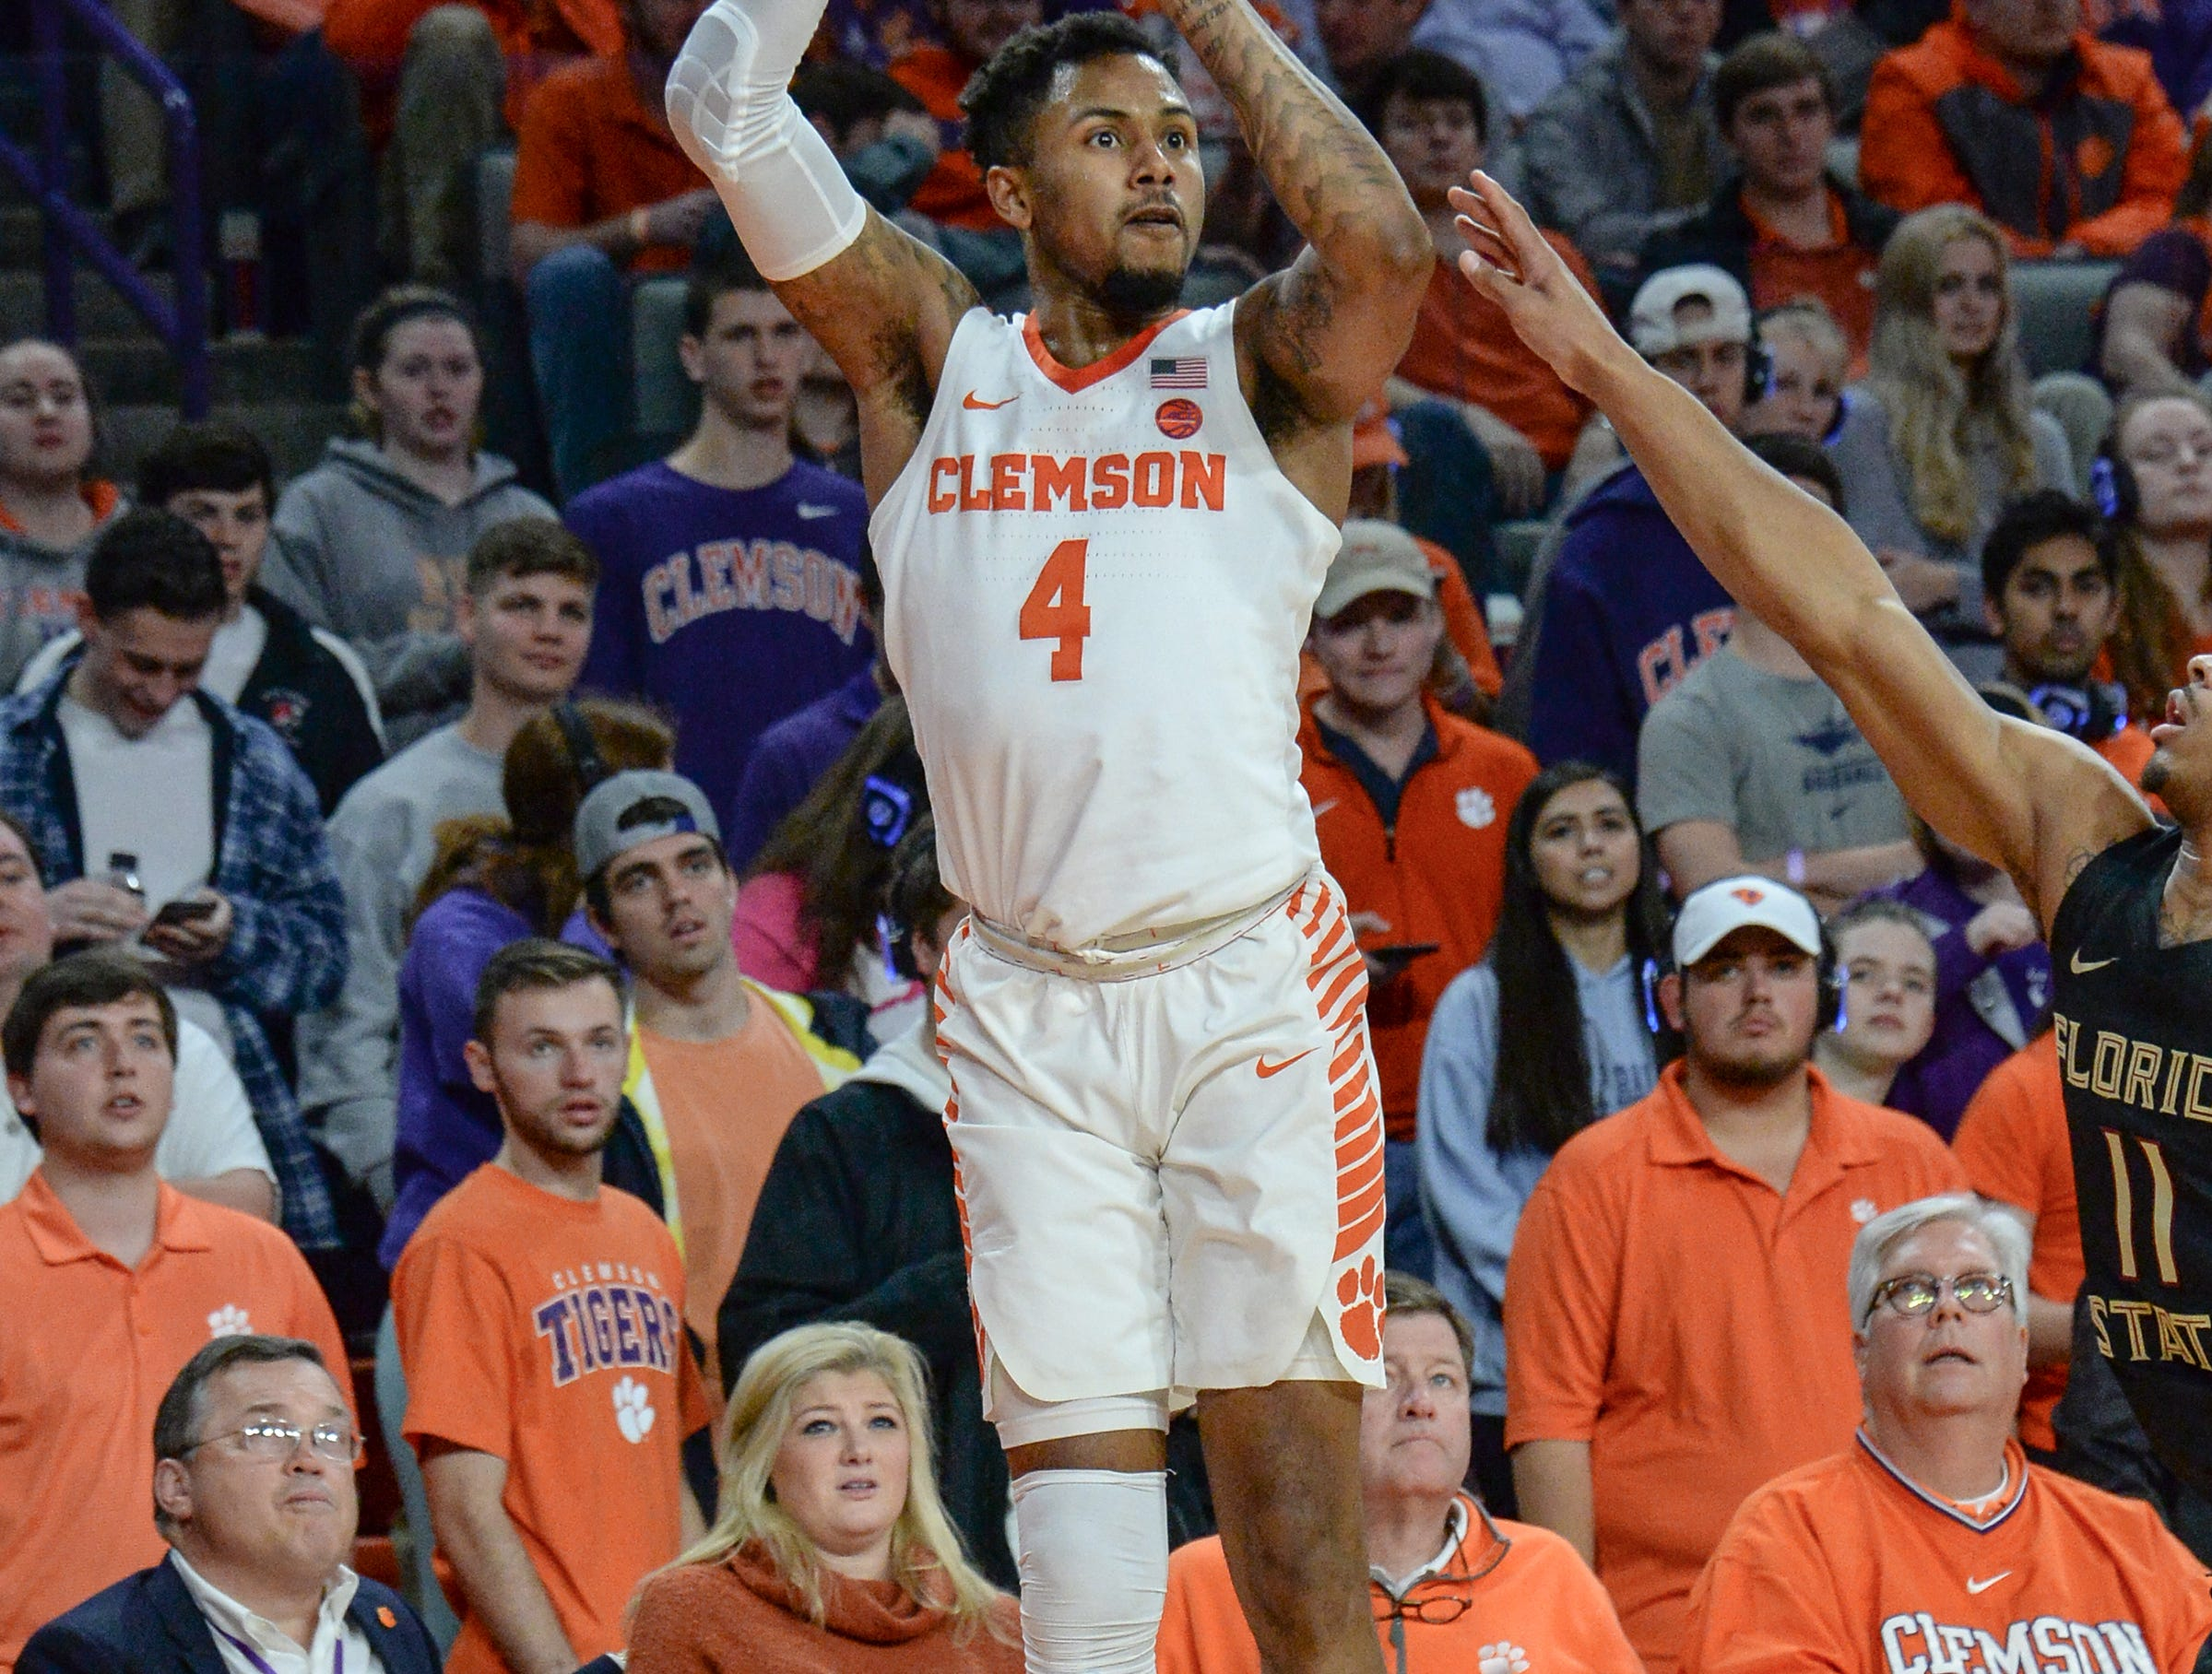 Clemson guard Shelton Mitchell (4) shoots during the second half at Littlejohn Coliseum in Clemson Tuesday, February 19, 2019.